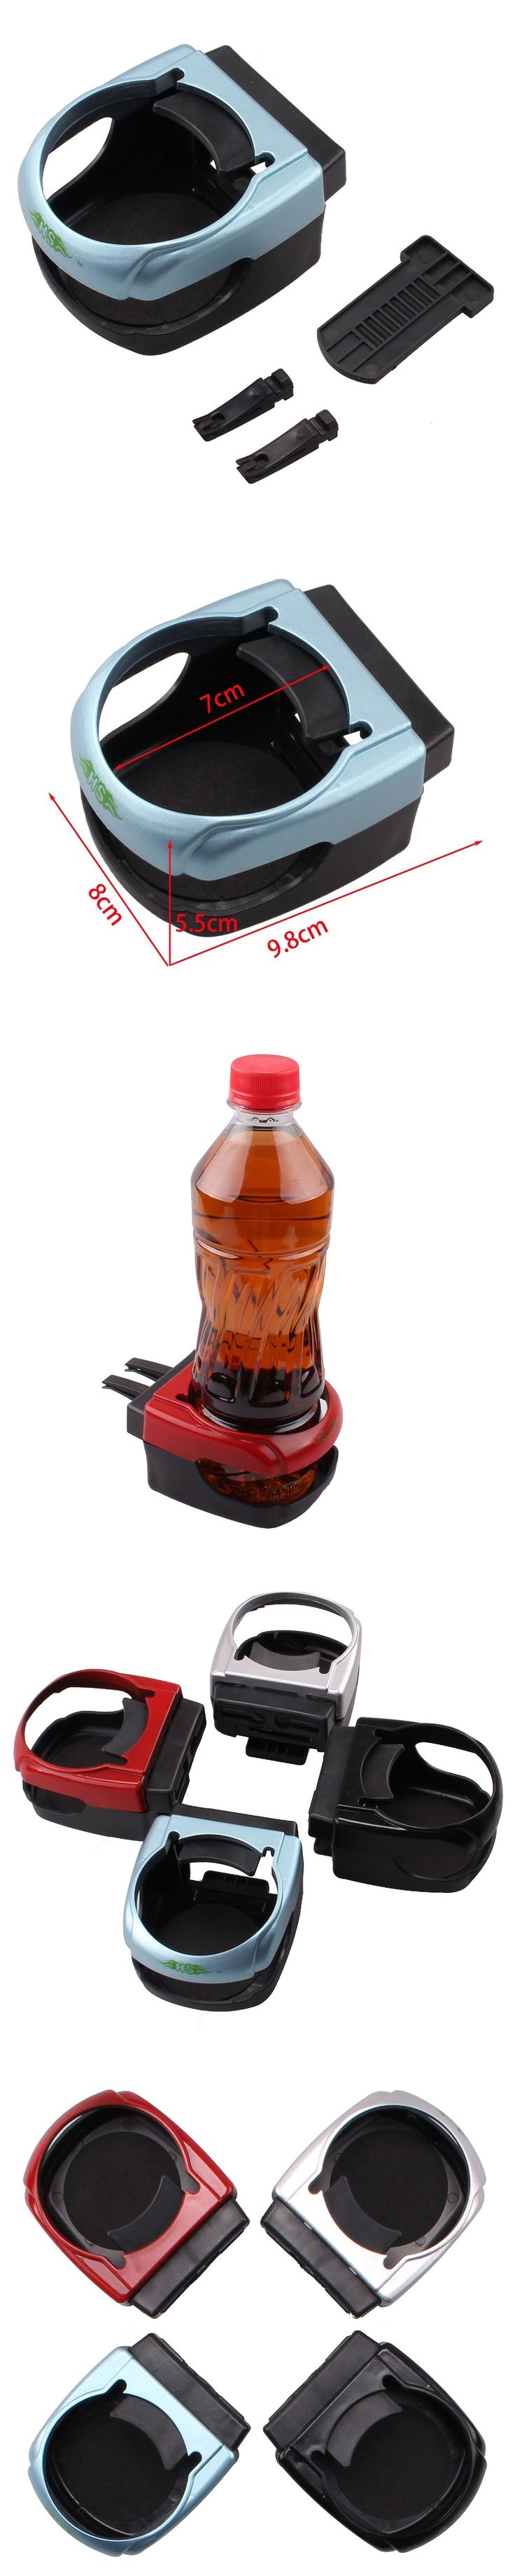 New Arrival In-Car Cup Bottle Stand Auto Drink Cup Holder Car Air Condition Vent Drinking Cola Bottle Mount Phone Holder 4 Color